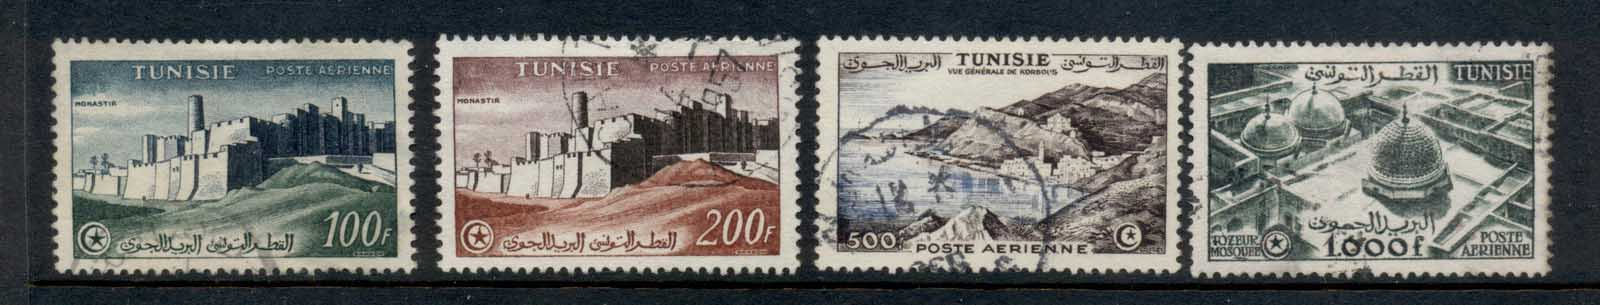 Tunisia 1956 Airmail redrawn without RF FU